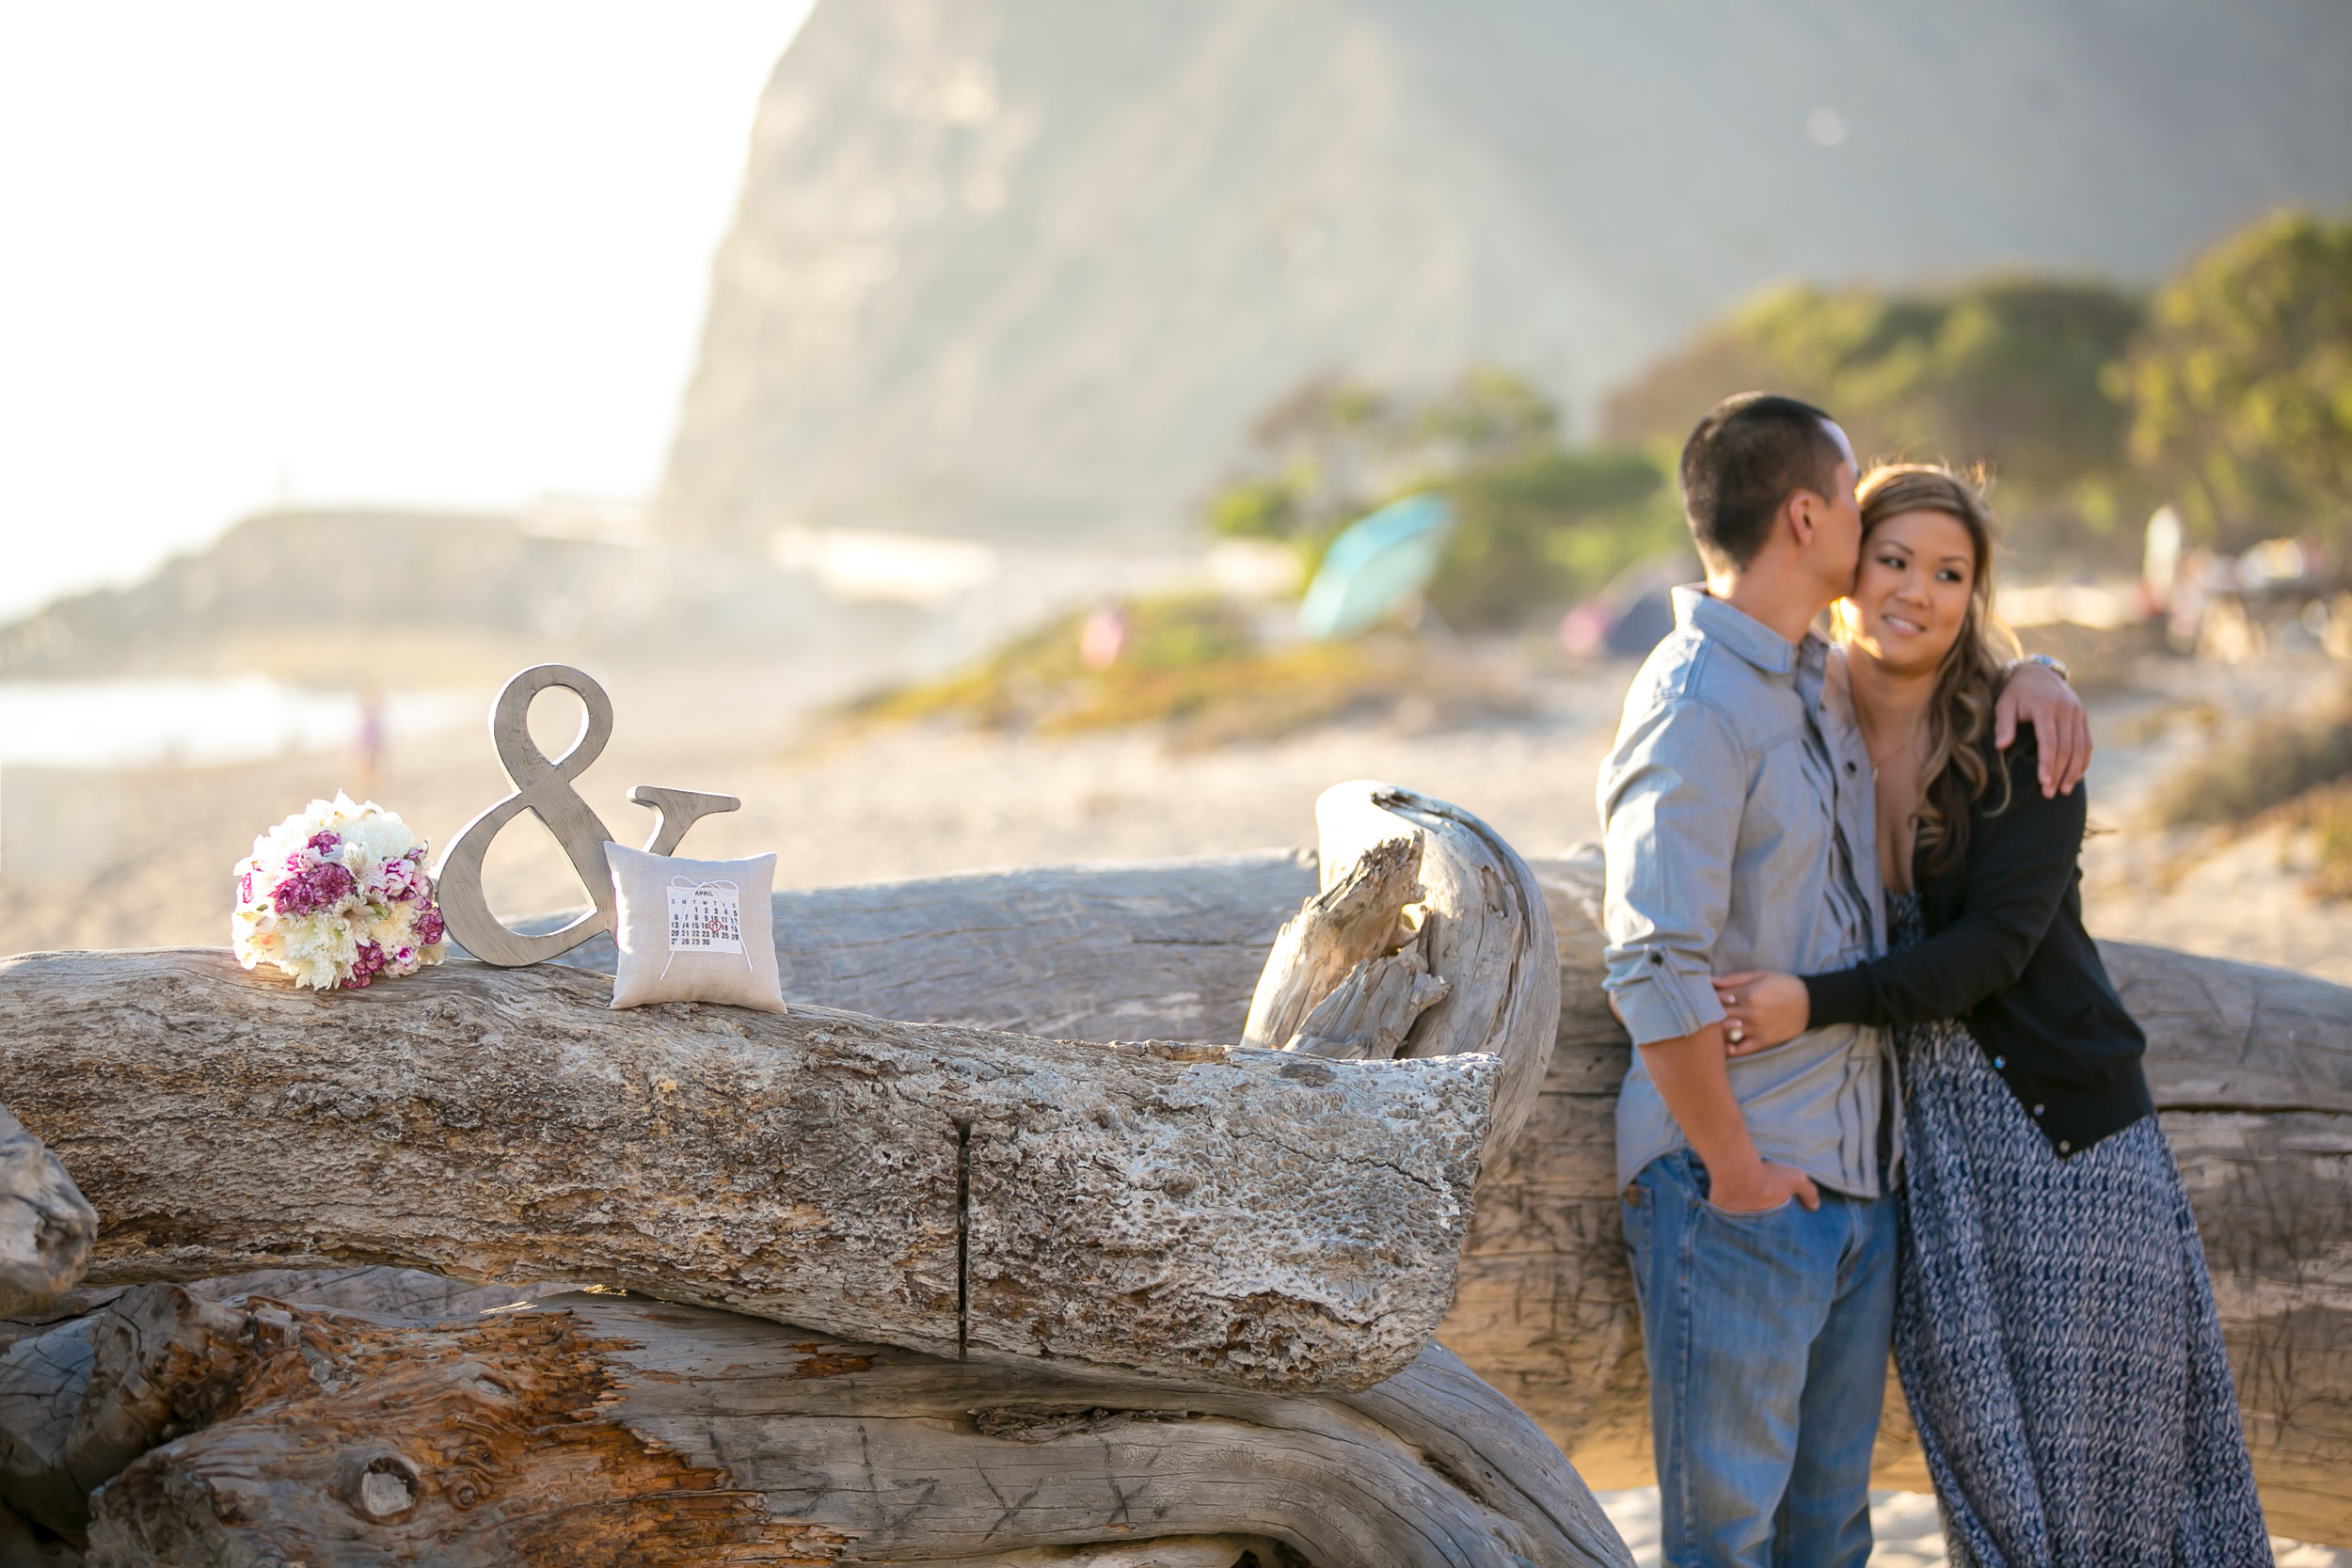 20131020_CHRIS_JEFF_MALIBU_BEACH_ENGAGEMENT_CHRIS_HOLT_PHOTOGRAPHY_005.jpg